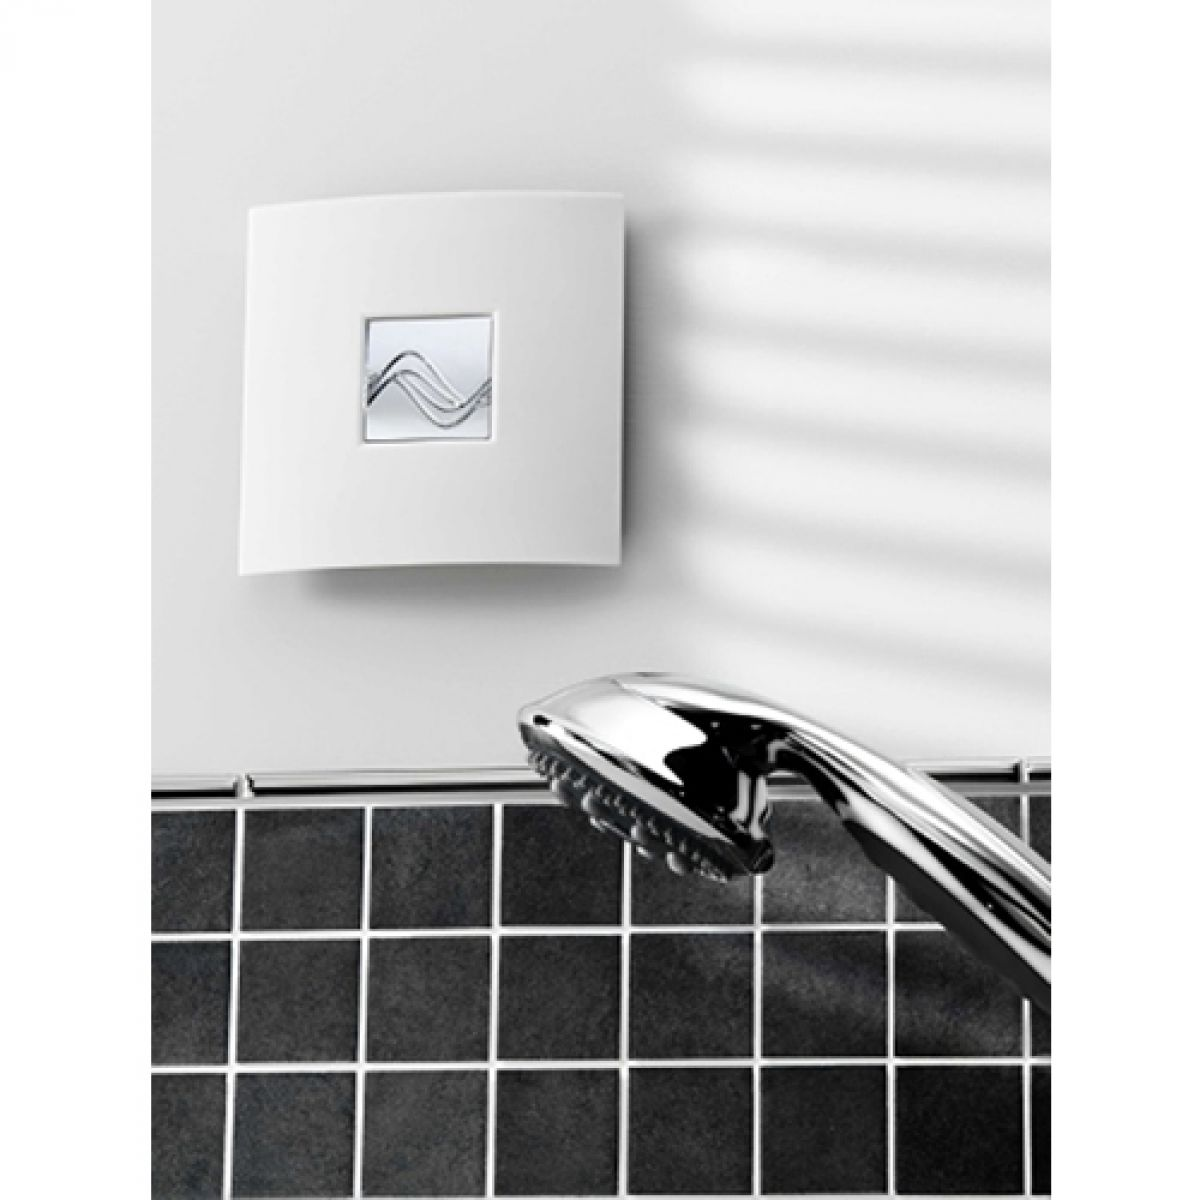 Bathroom Extractor Fan Of Zehnder Silent Wall Fan Ip24 Uk Bathrooms